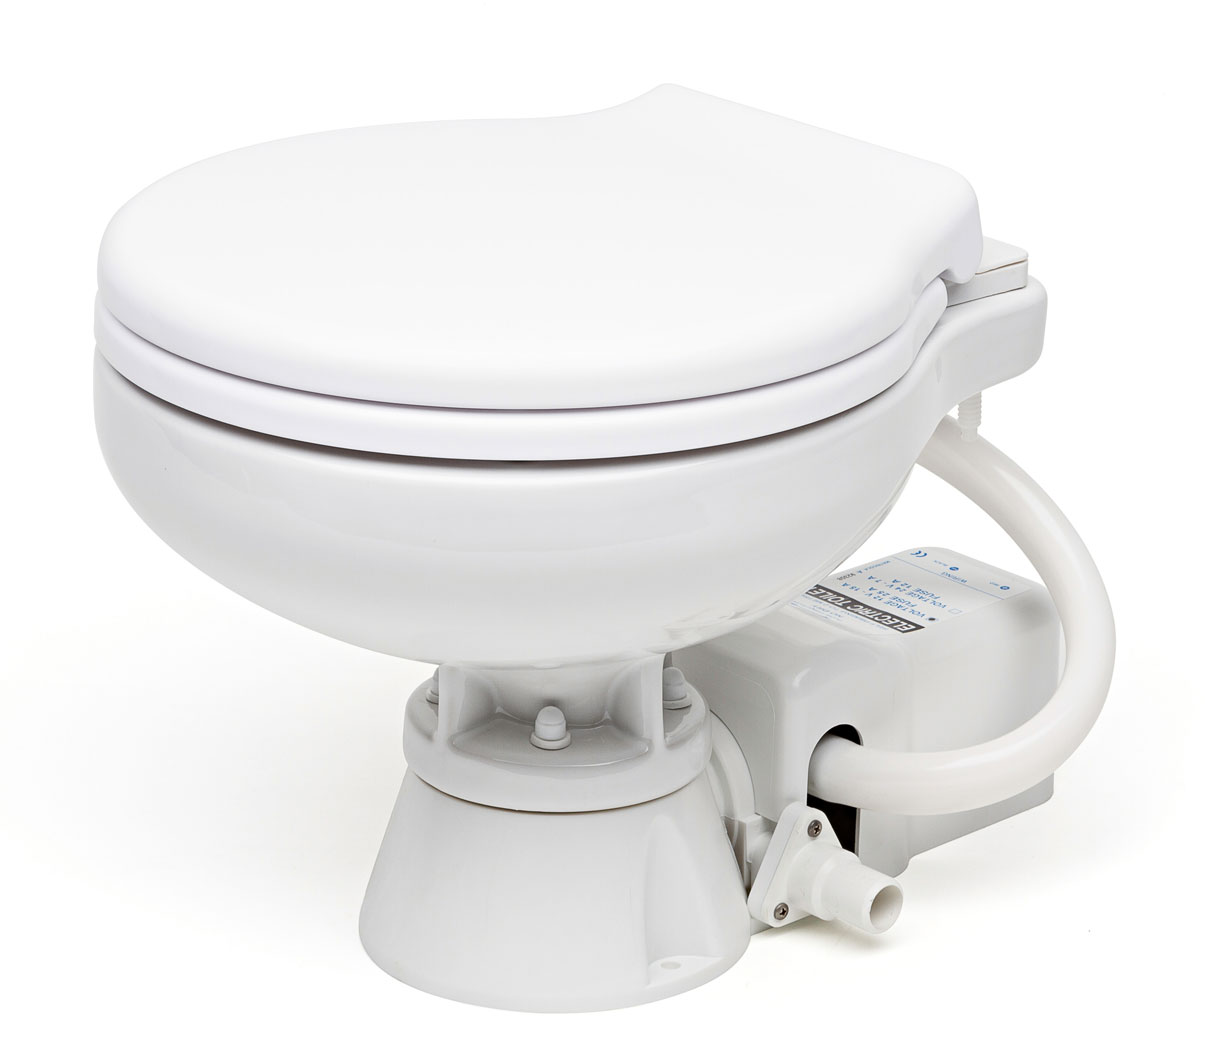 Commode Marine Matromarine Products Electric Toilet Space Saver 12v